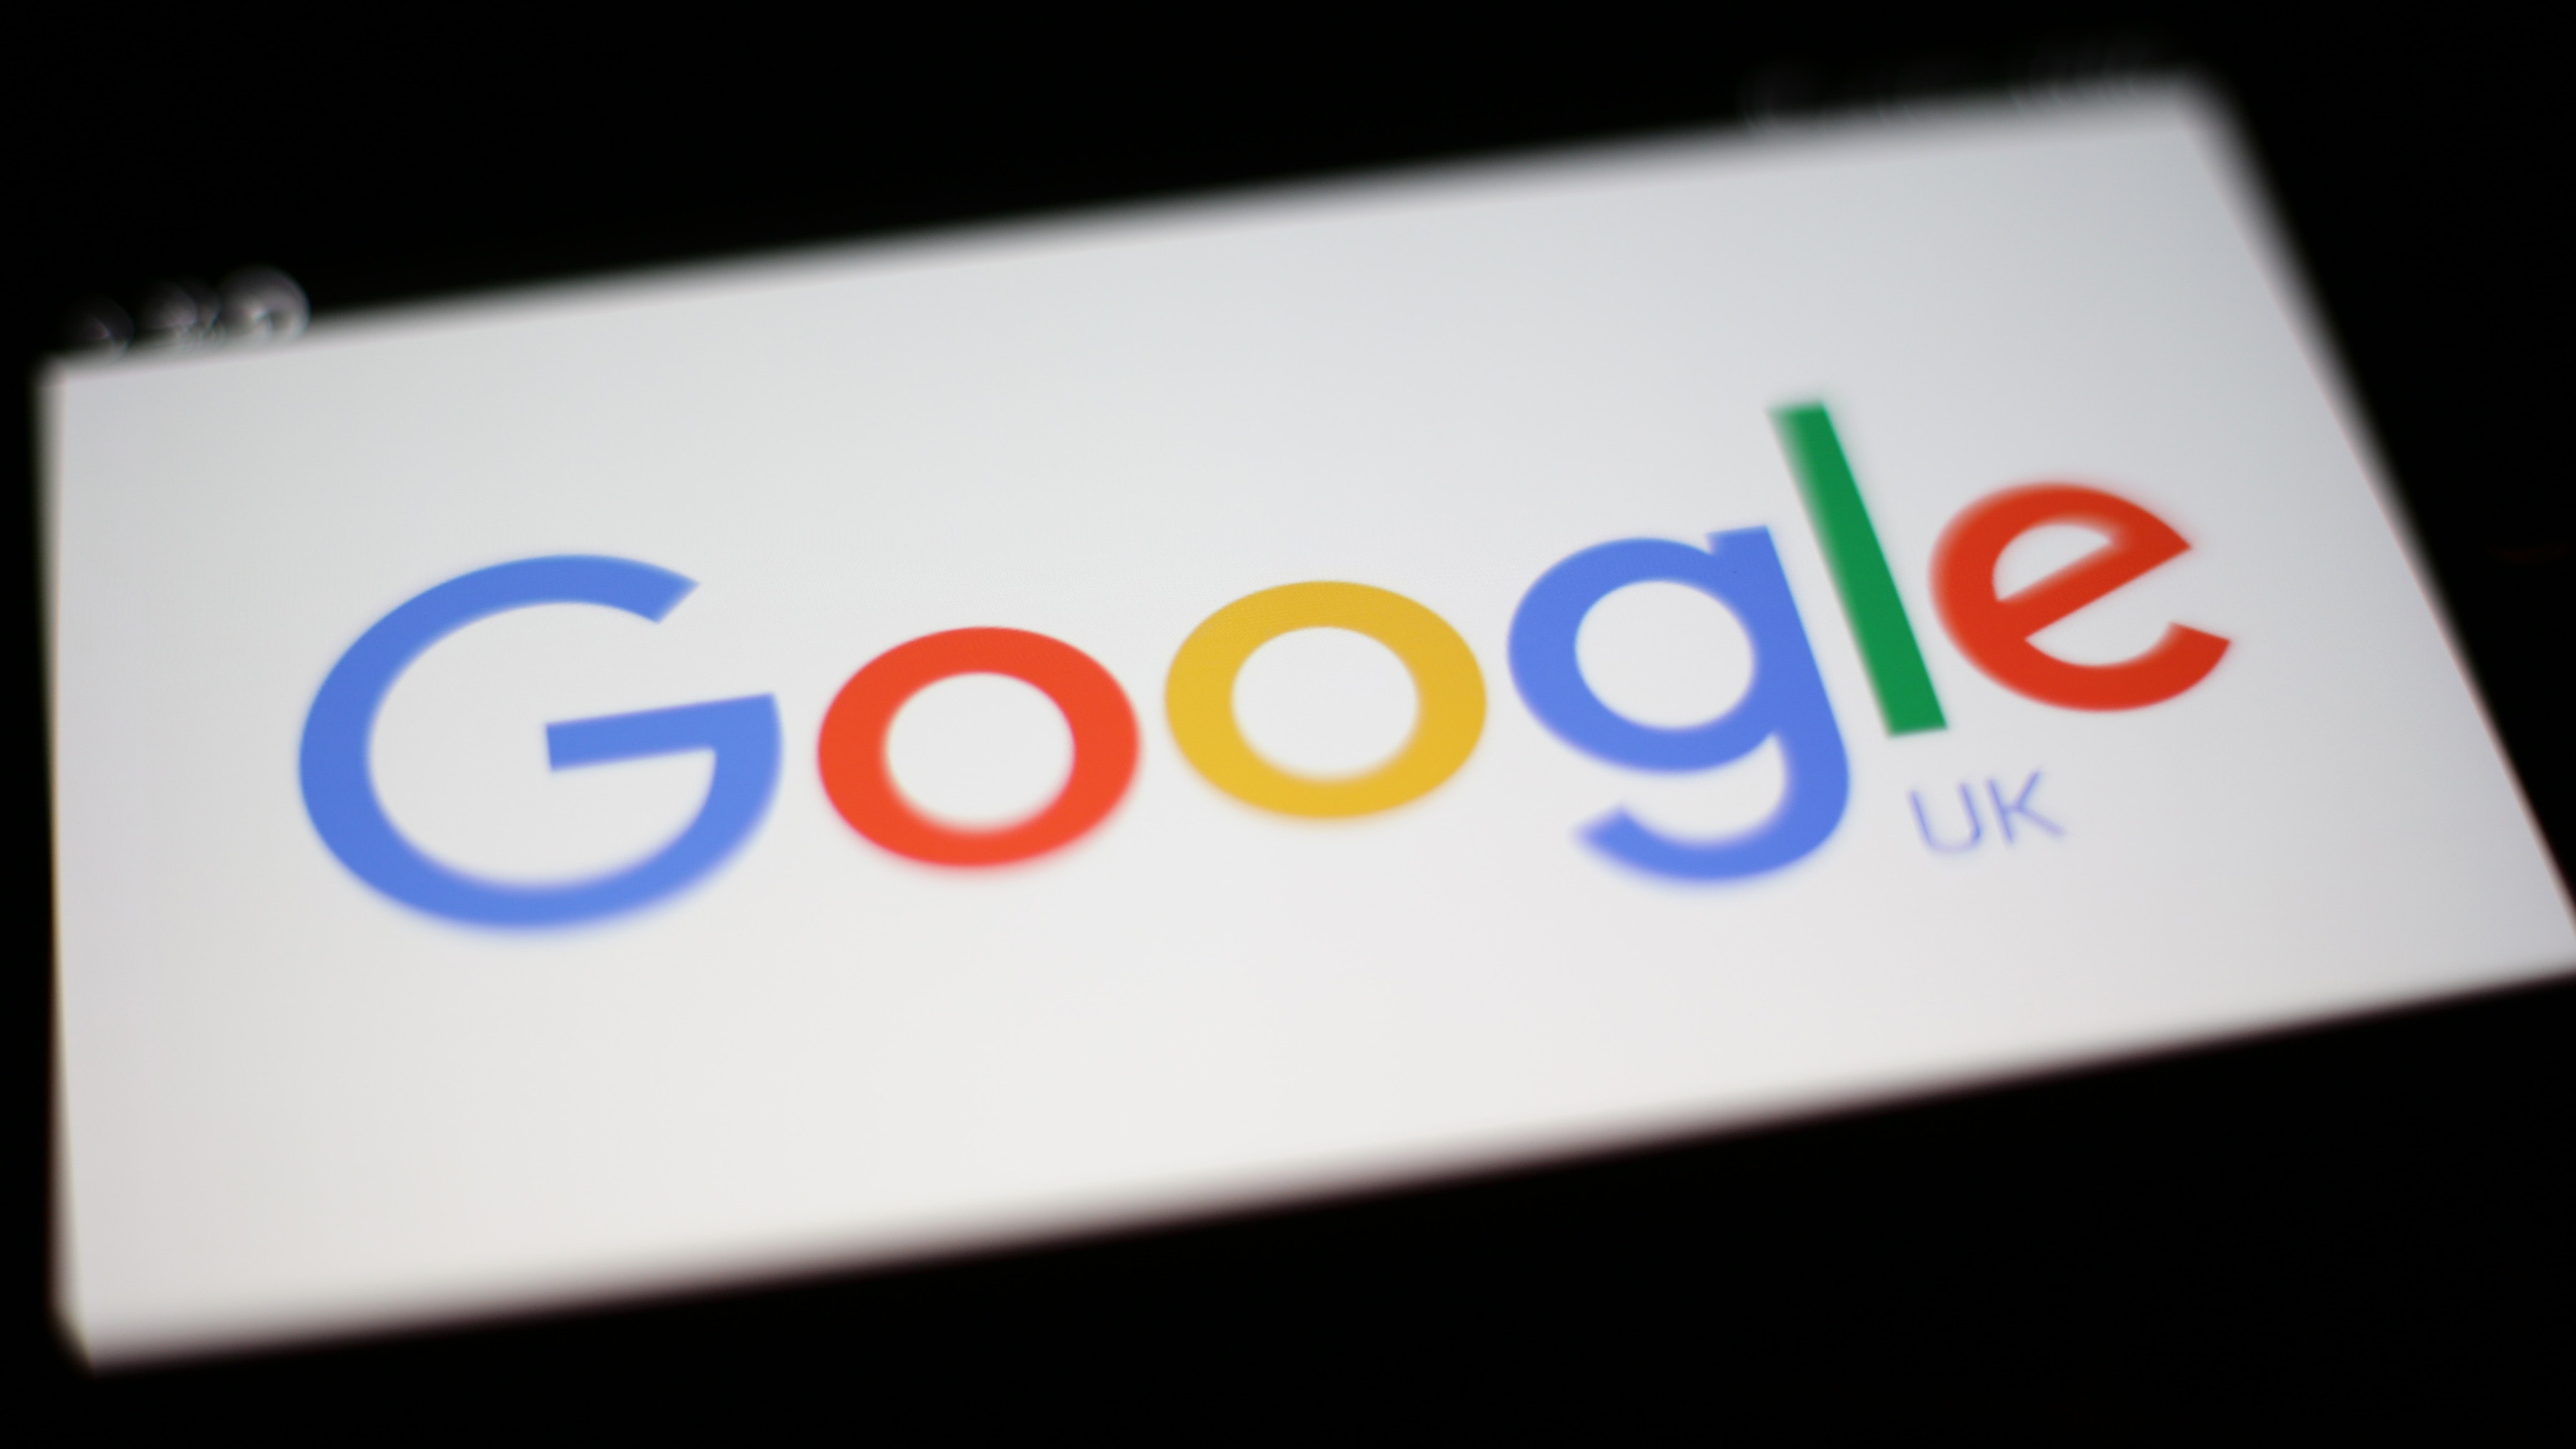 Google suffers defeat in landmark 'right to be forgotten' case